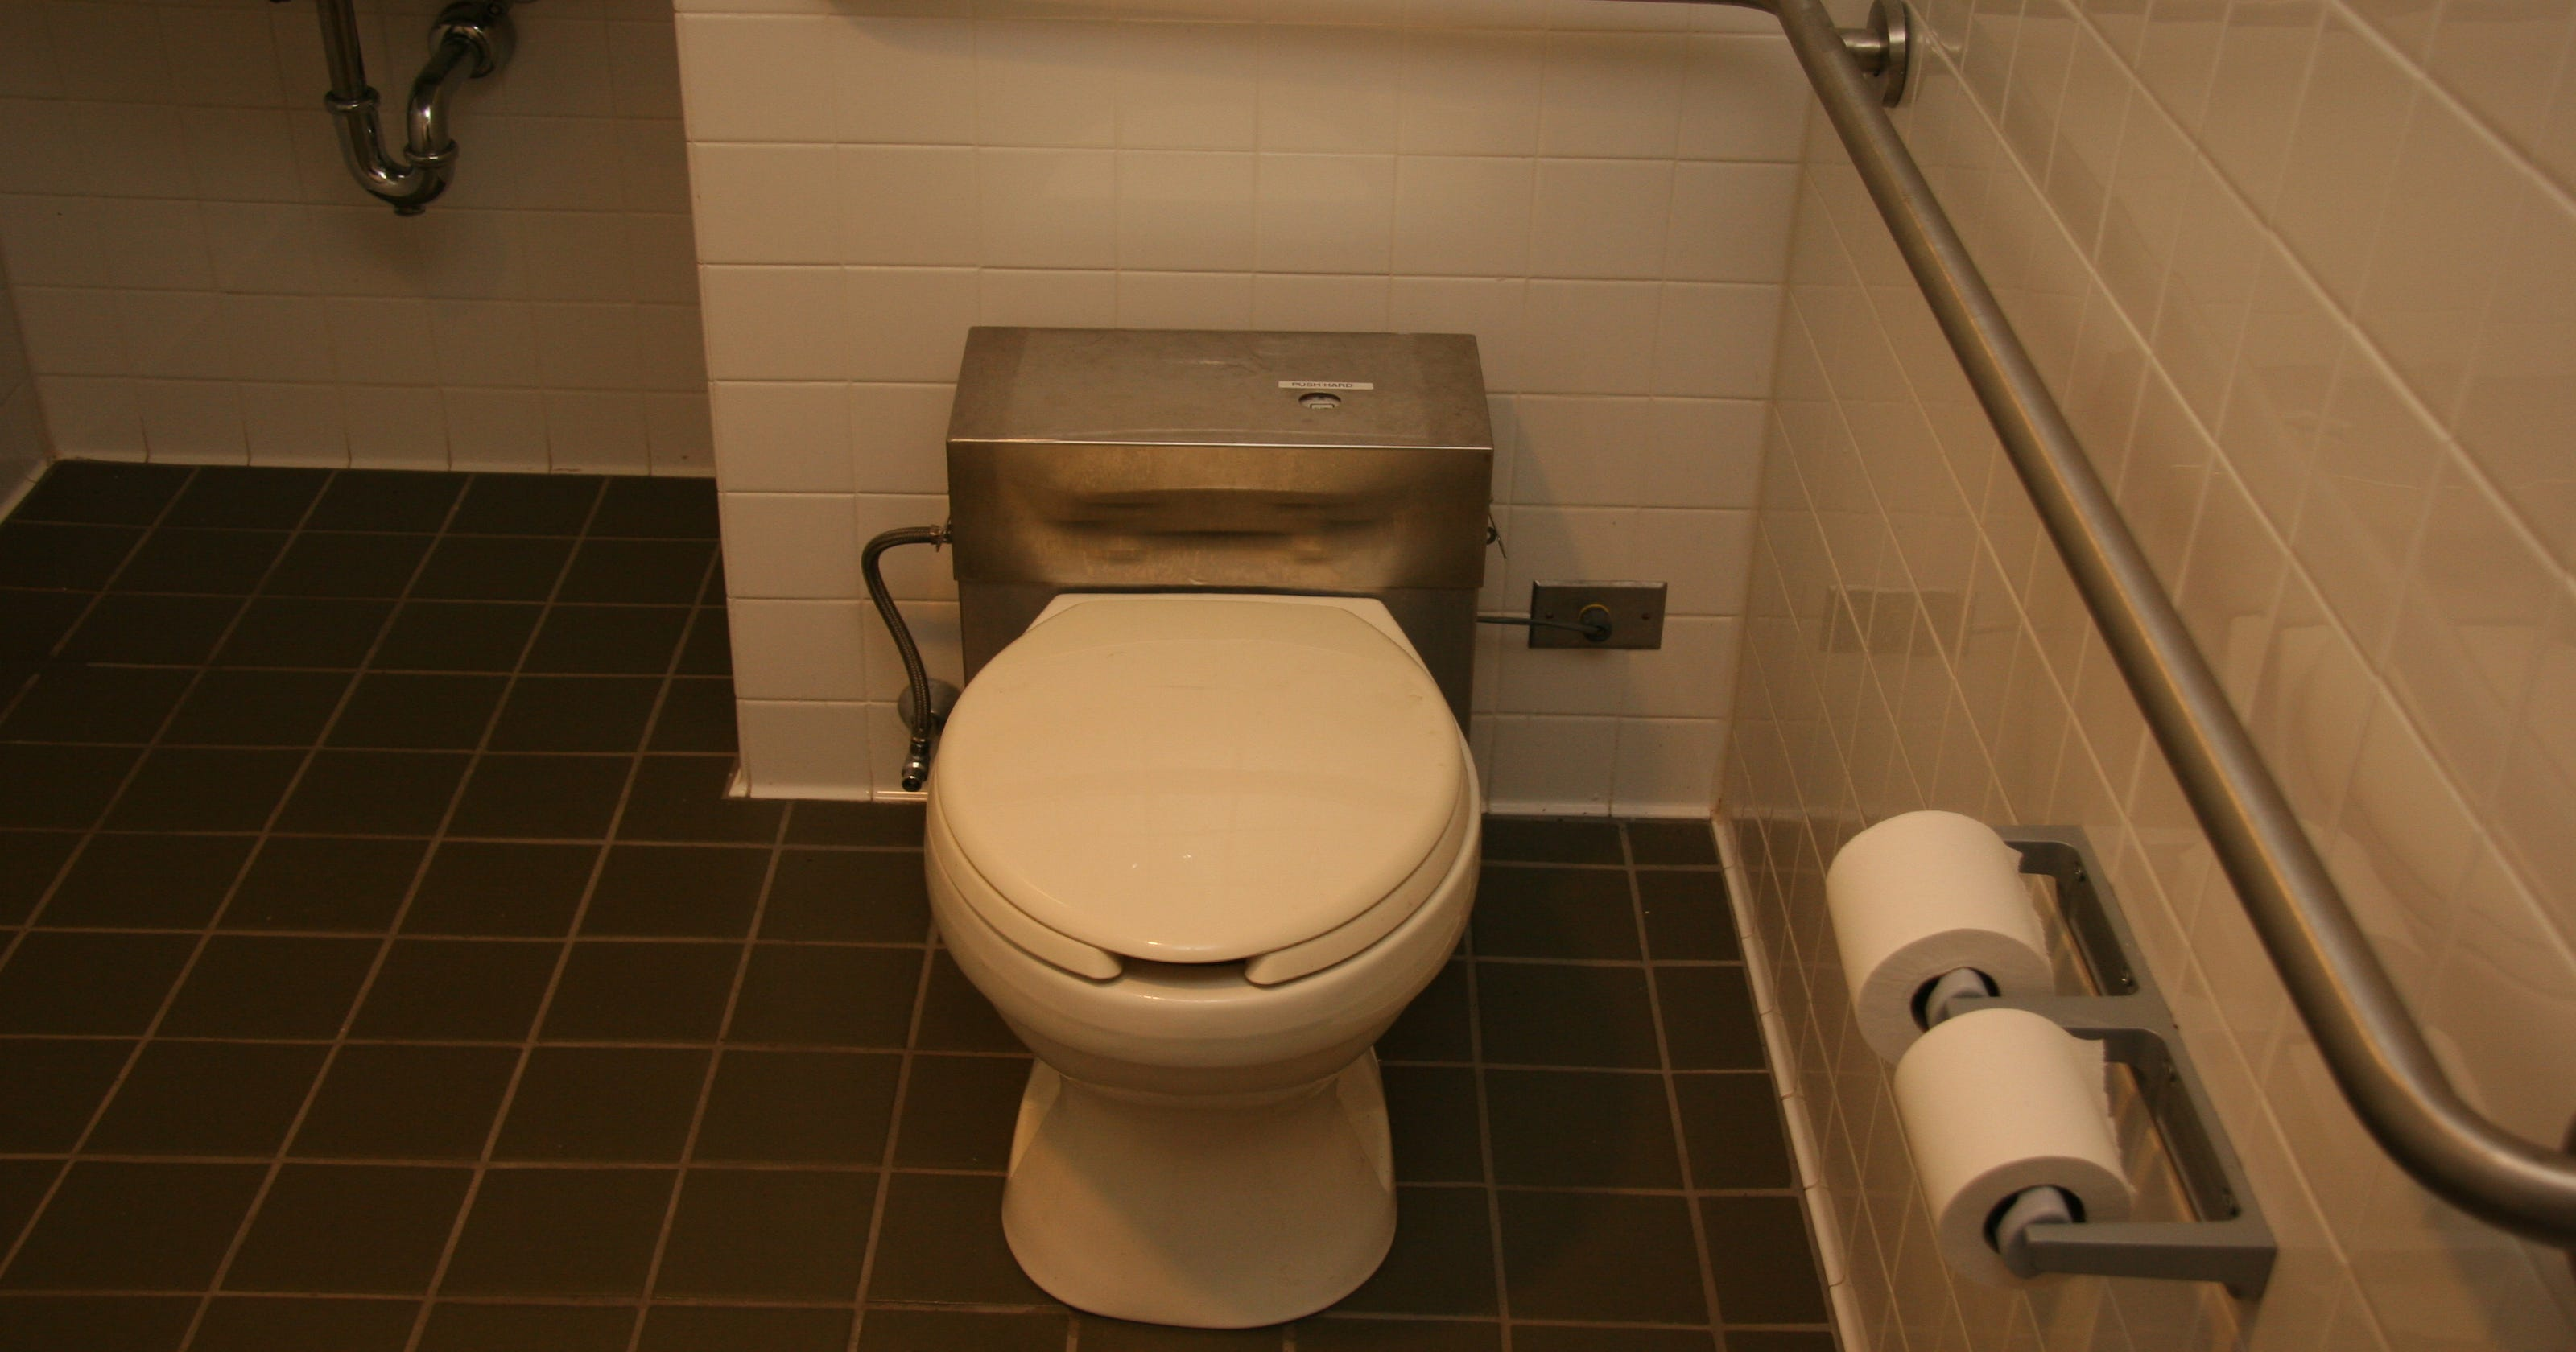 How an unusual toilet gave county officials pause